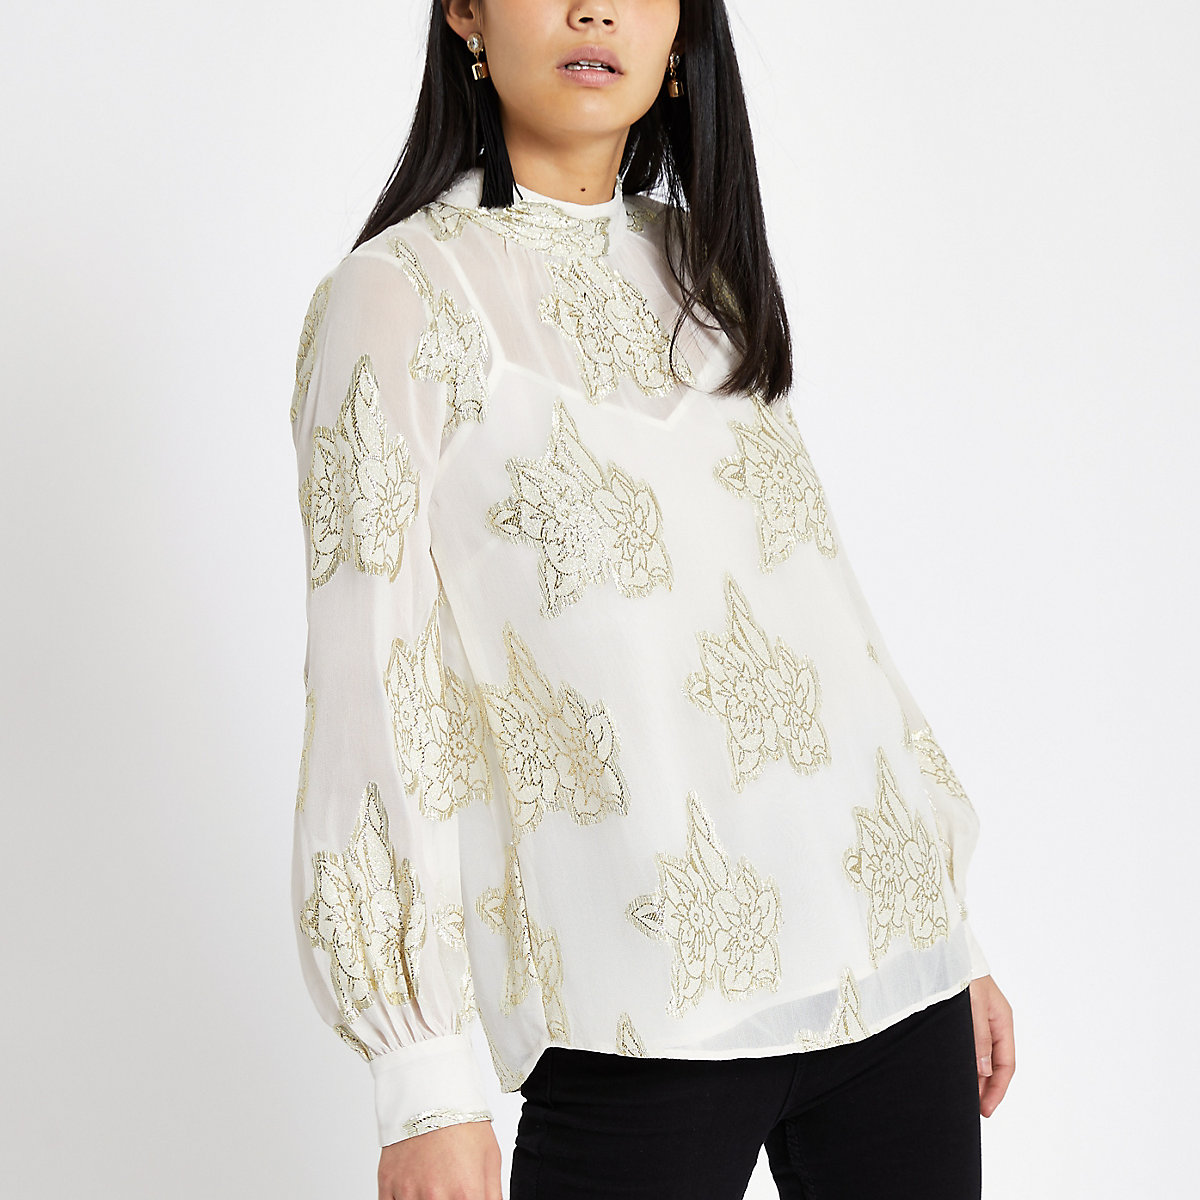 White floral jacquard tie front top